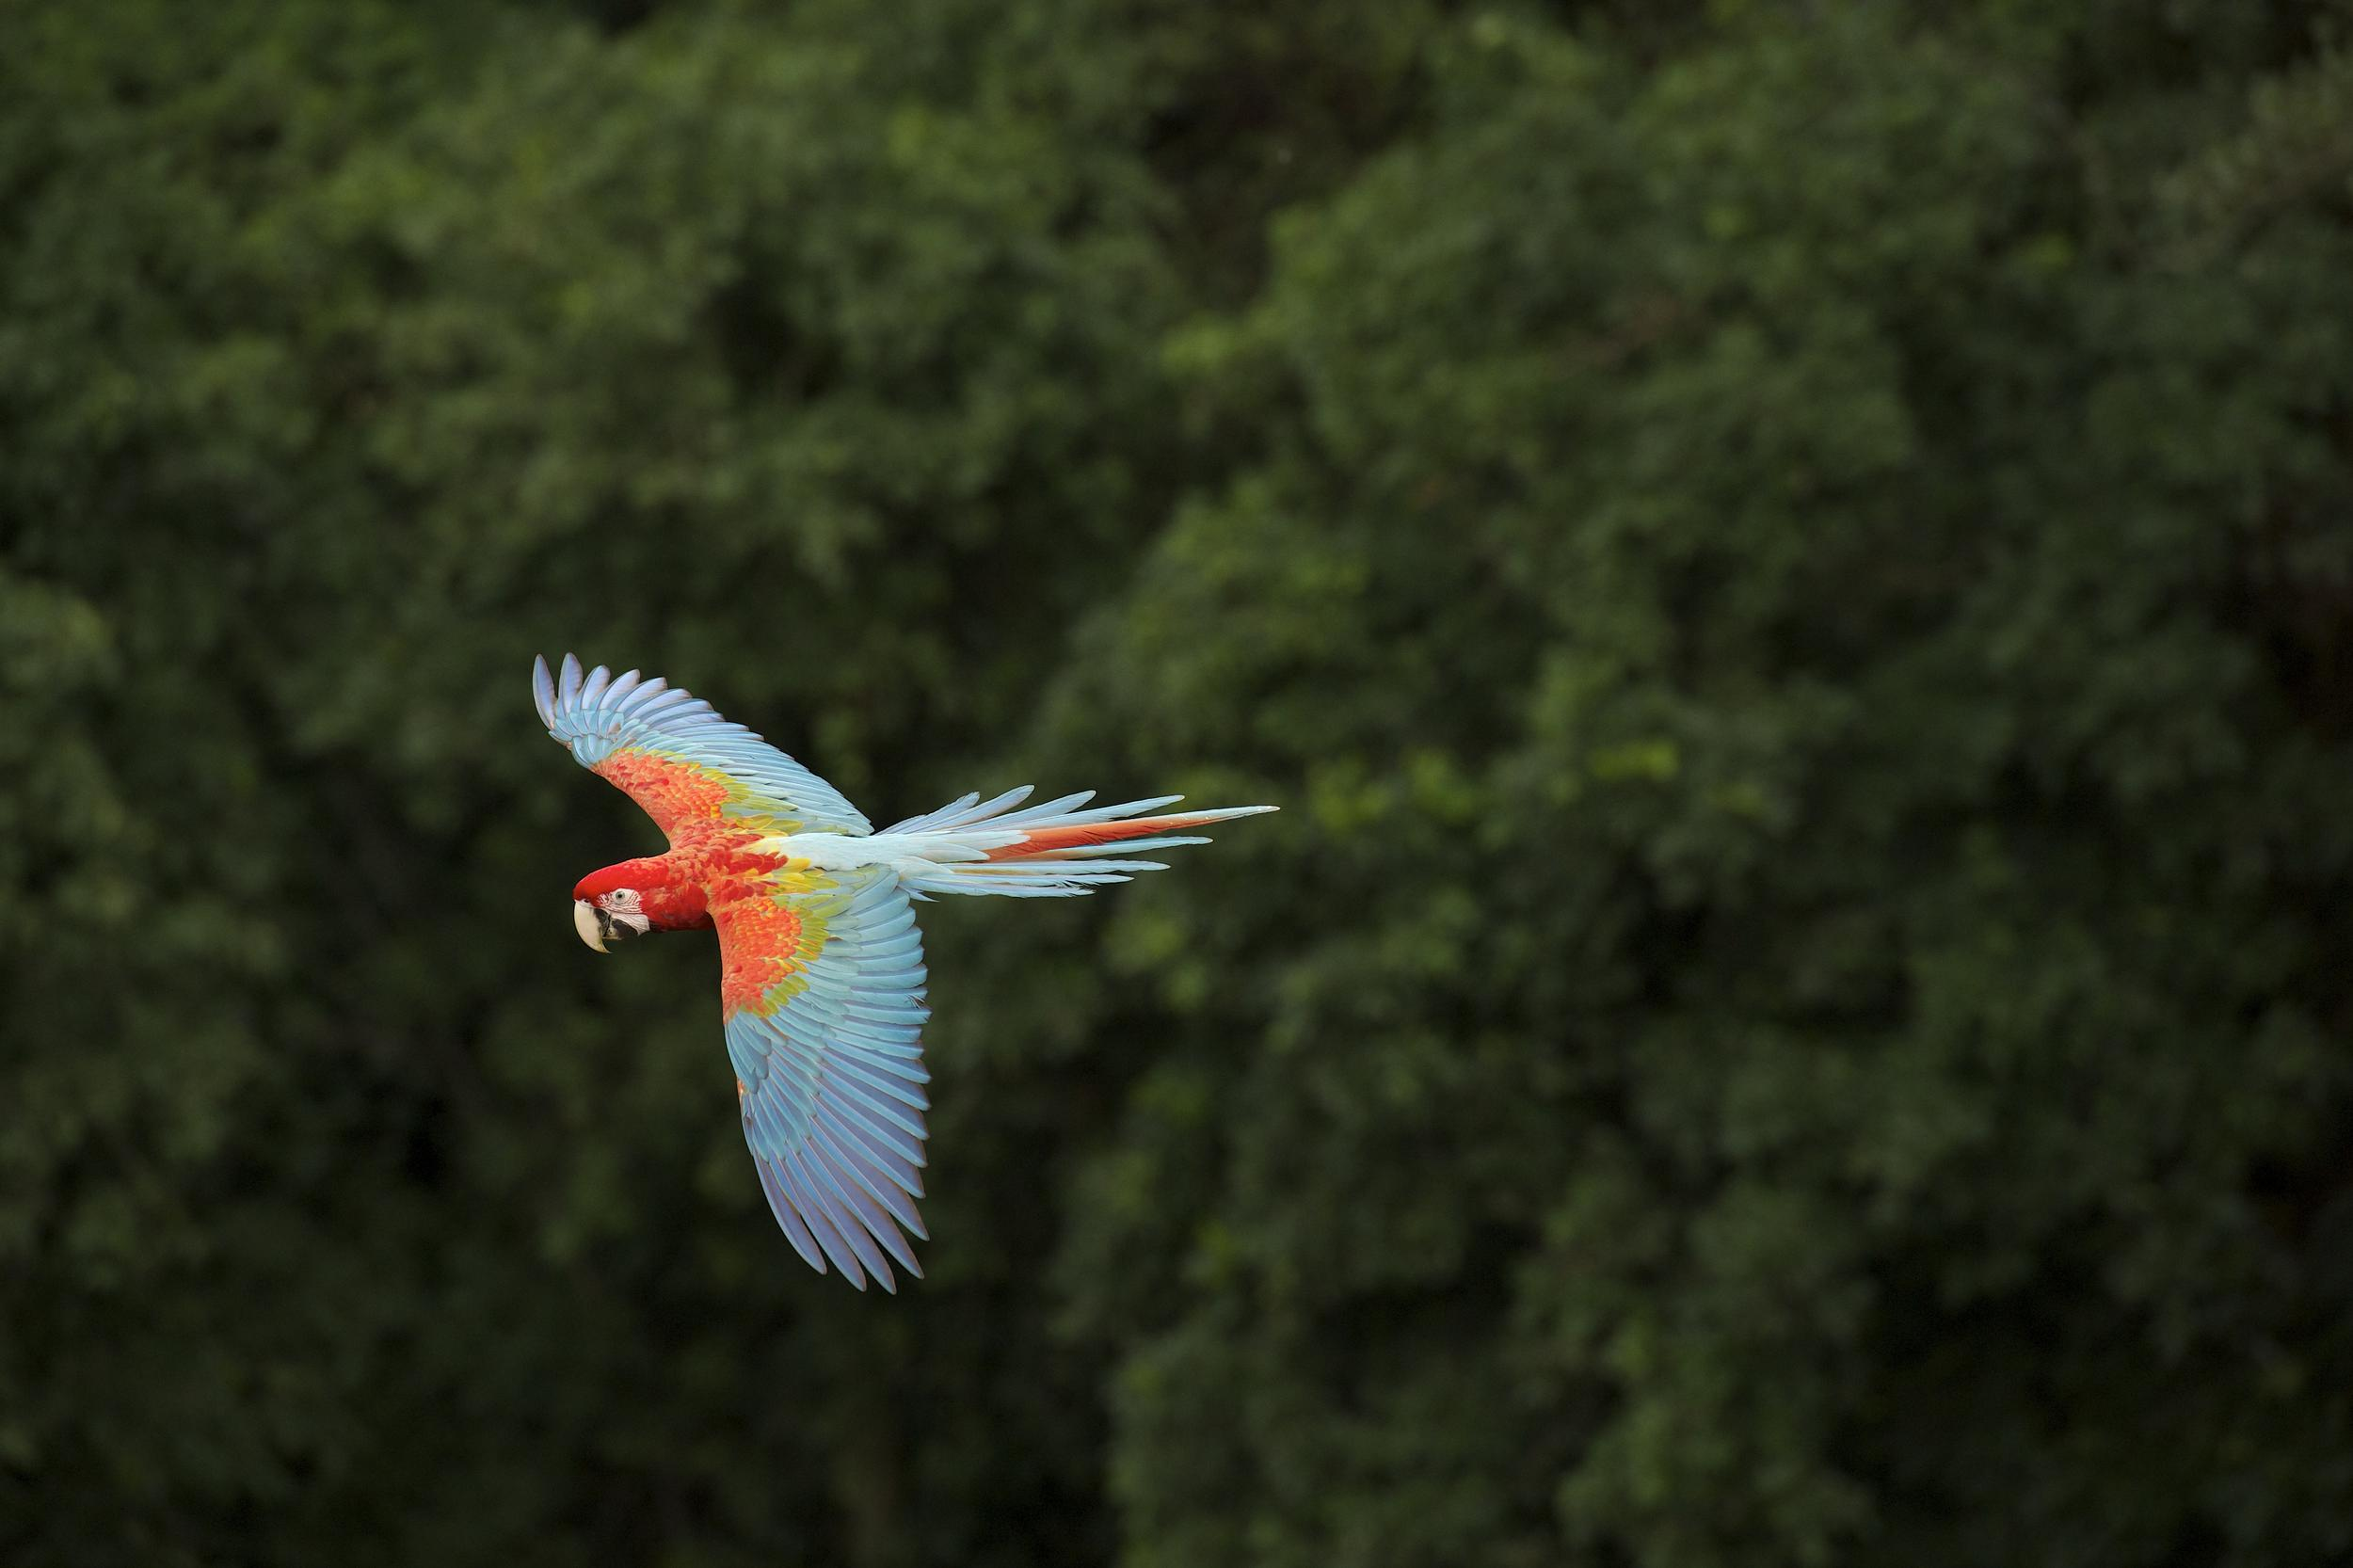 parrot flying over trees